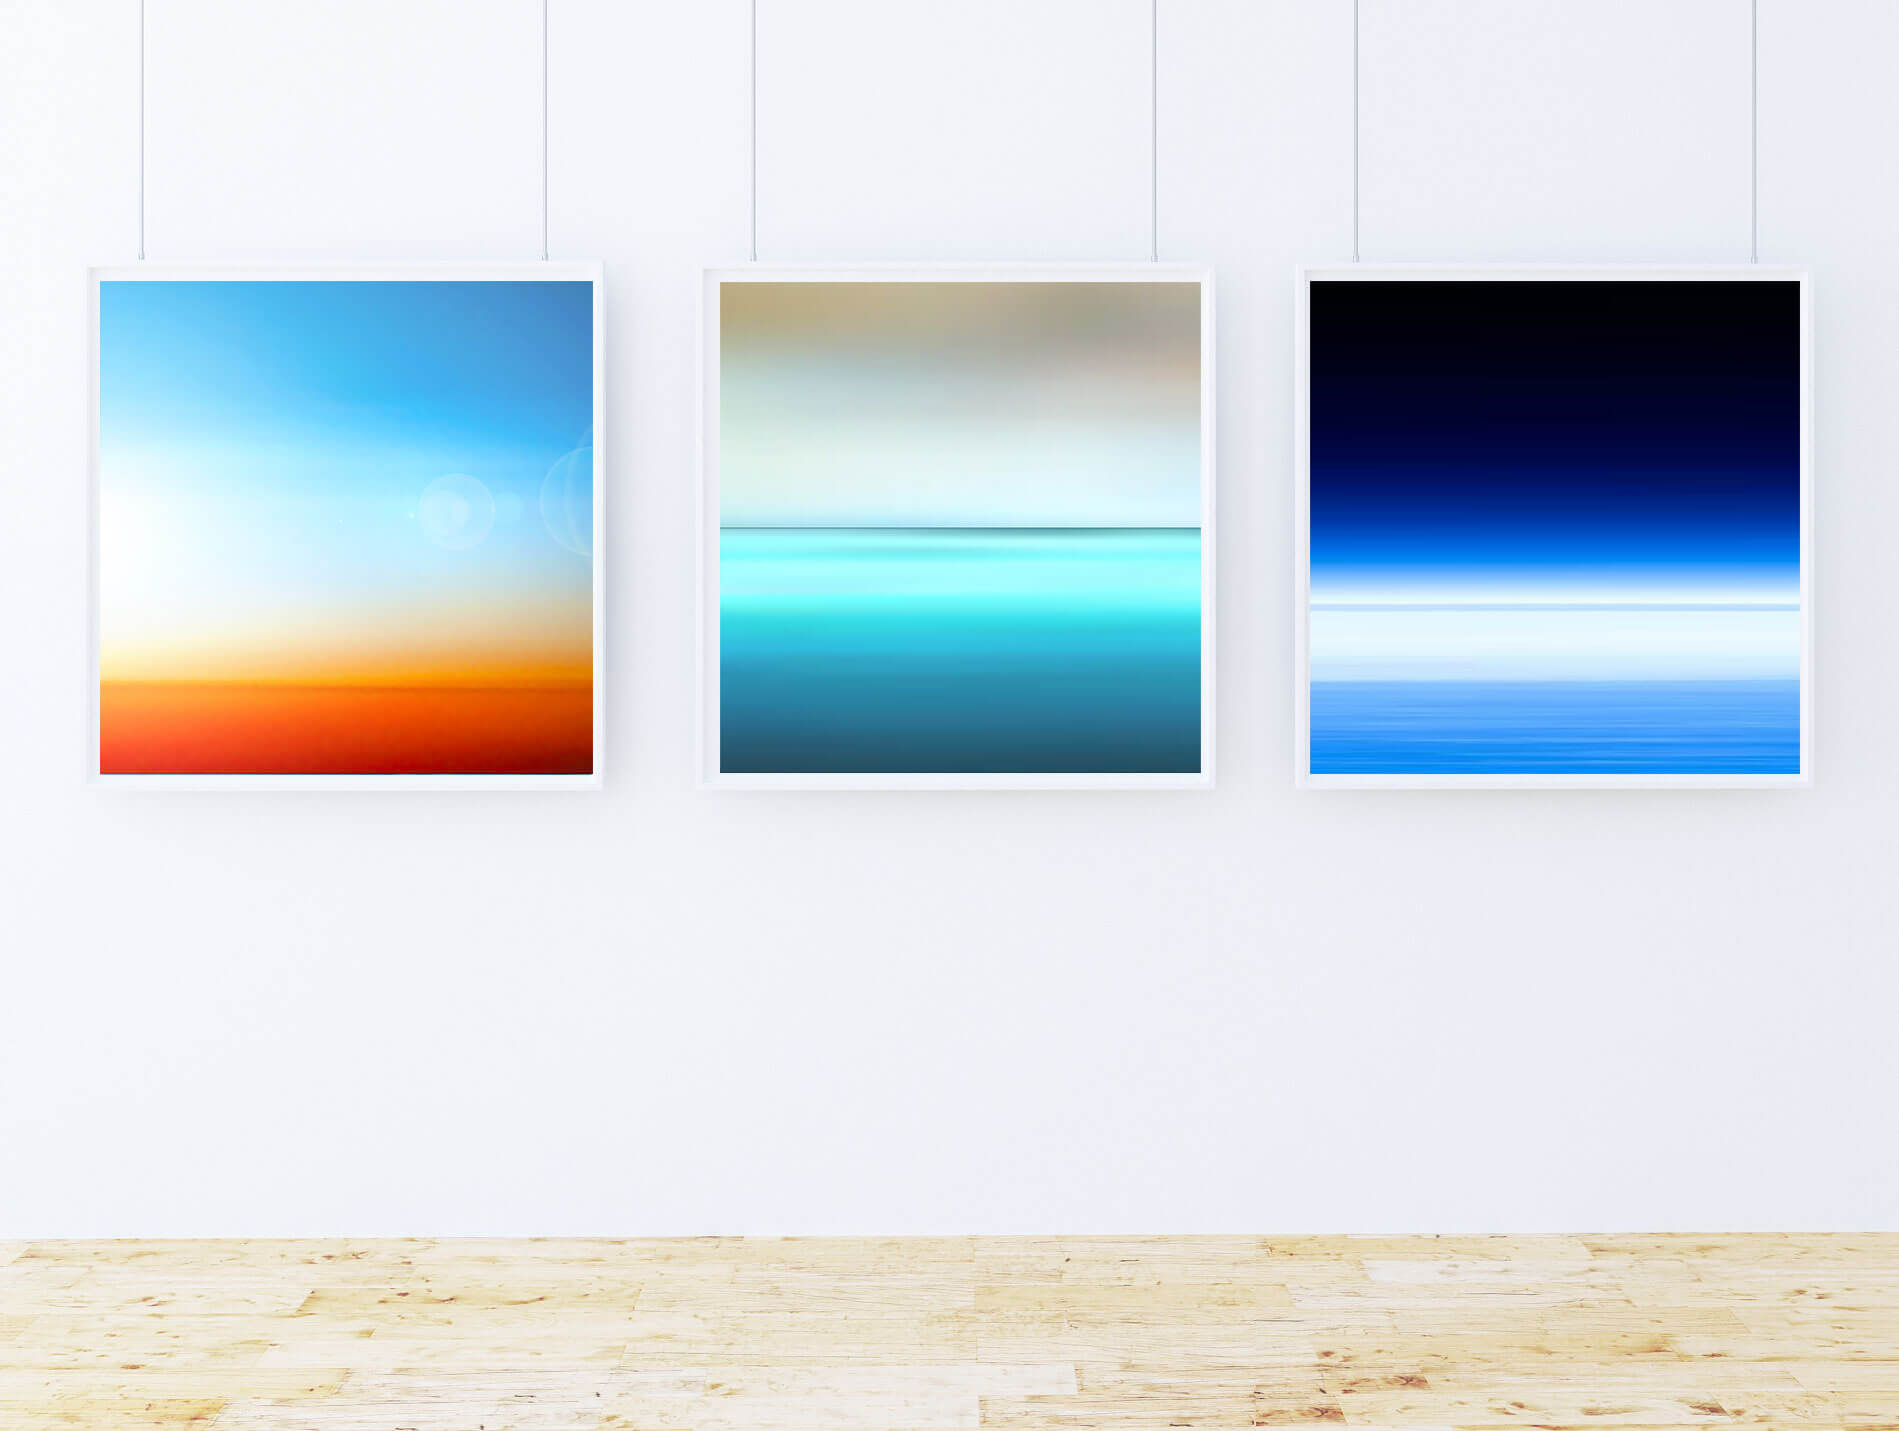 Space-Sea Series  - Desert, Sea, Space! Abstract Art for Sale (60x60cm) £395 Framed (each). Art for Sitting Room.